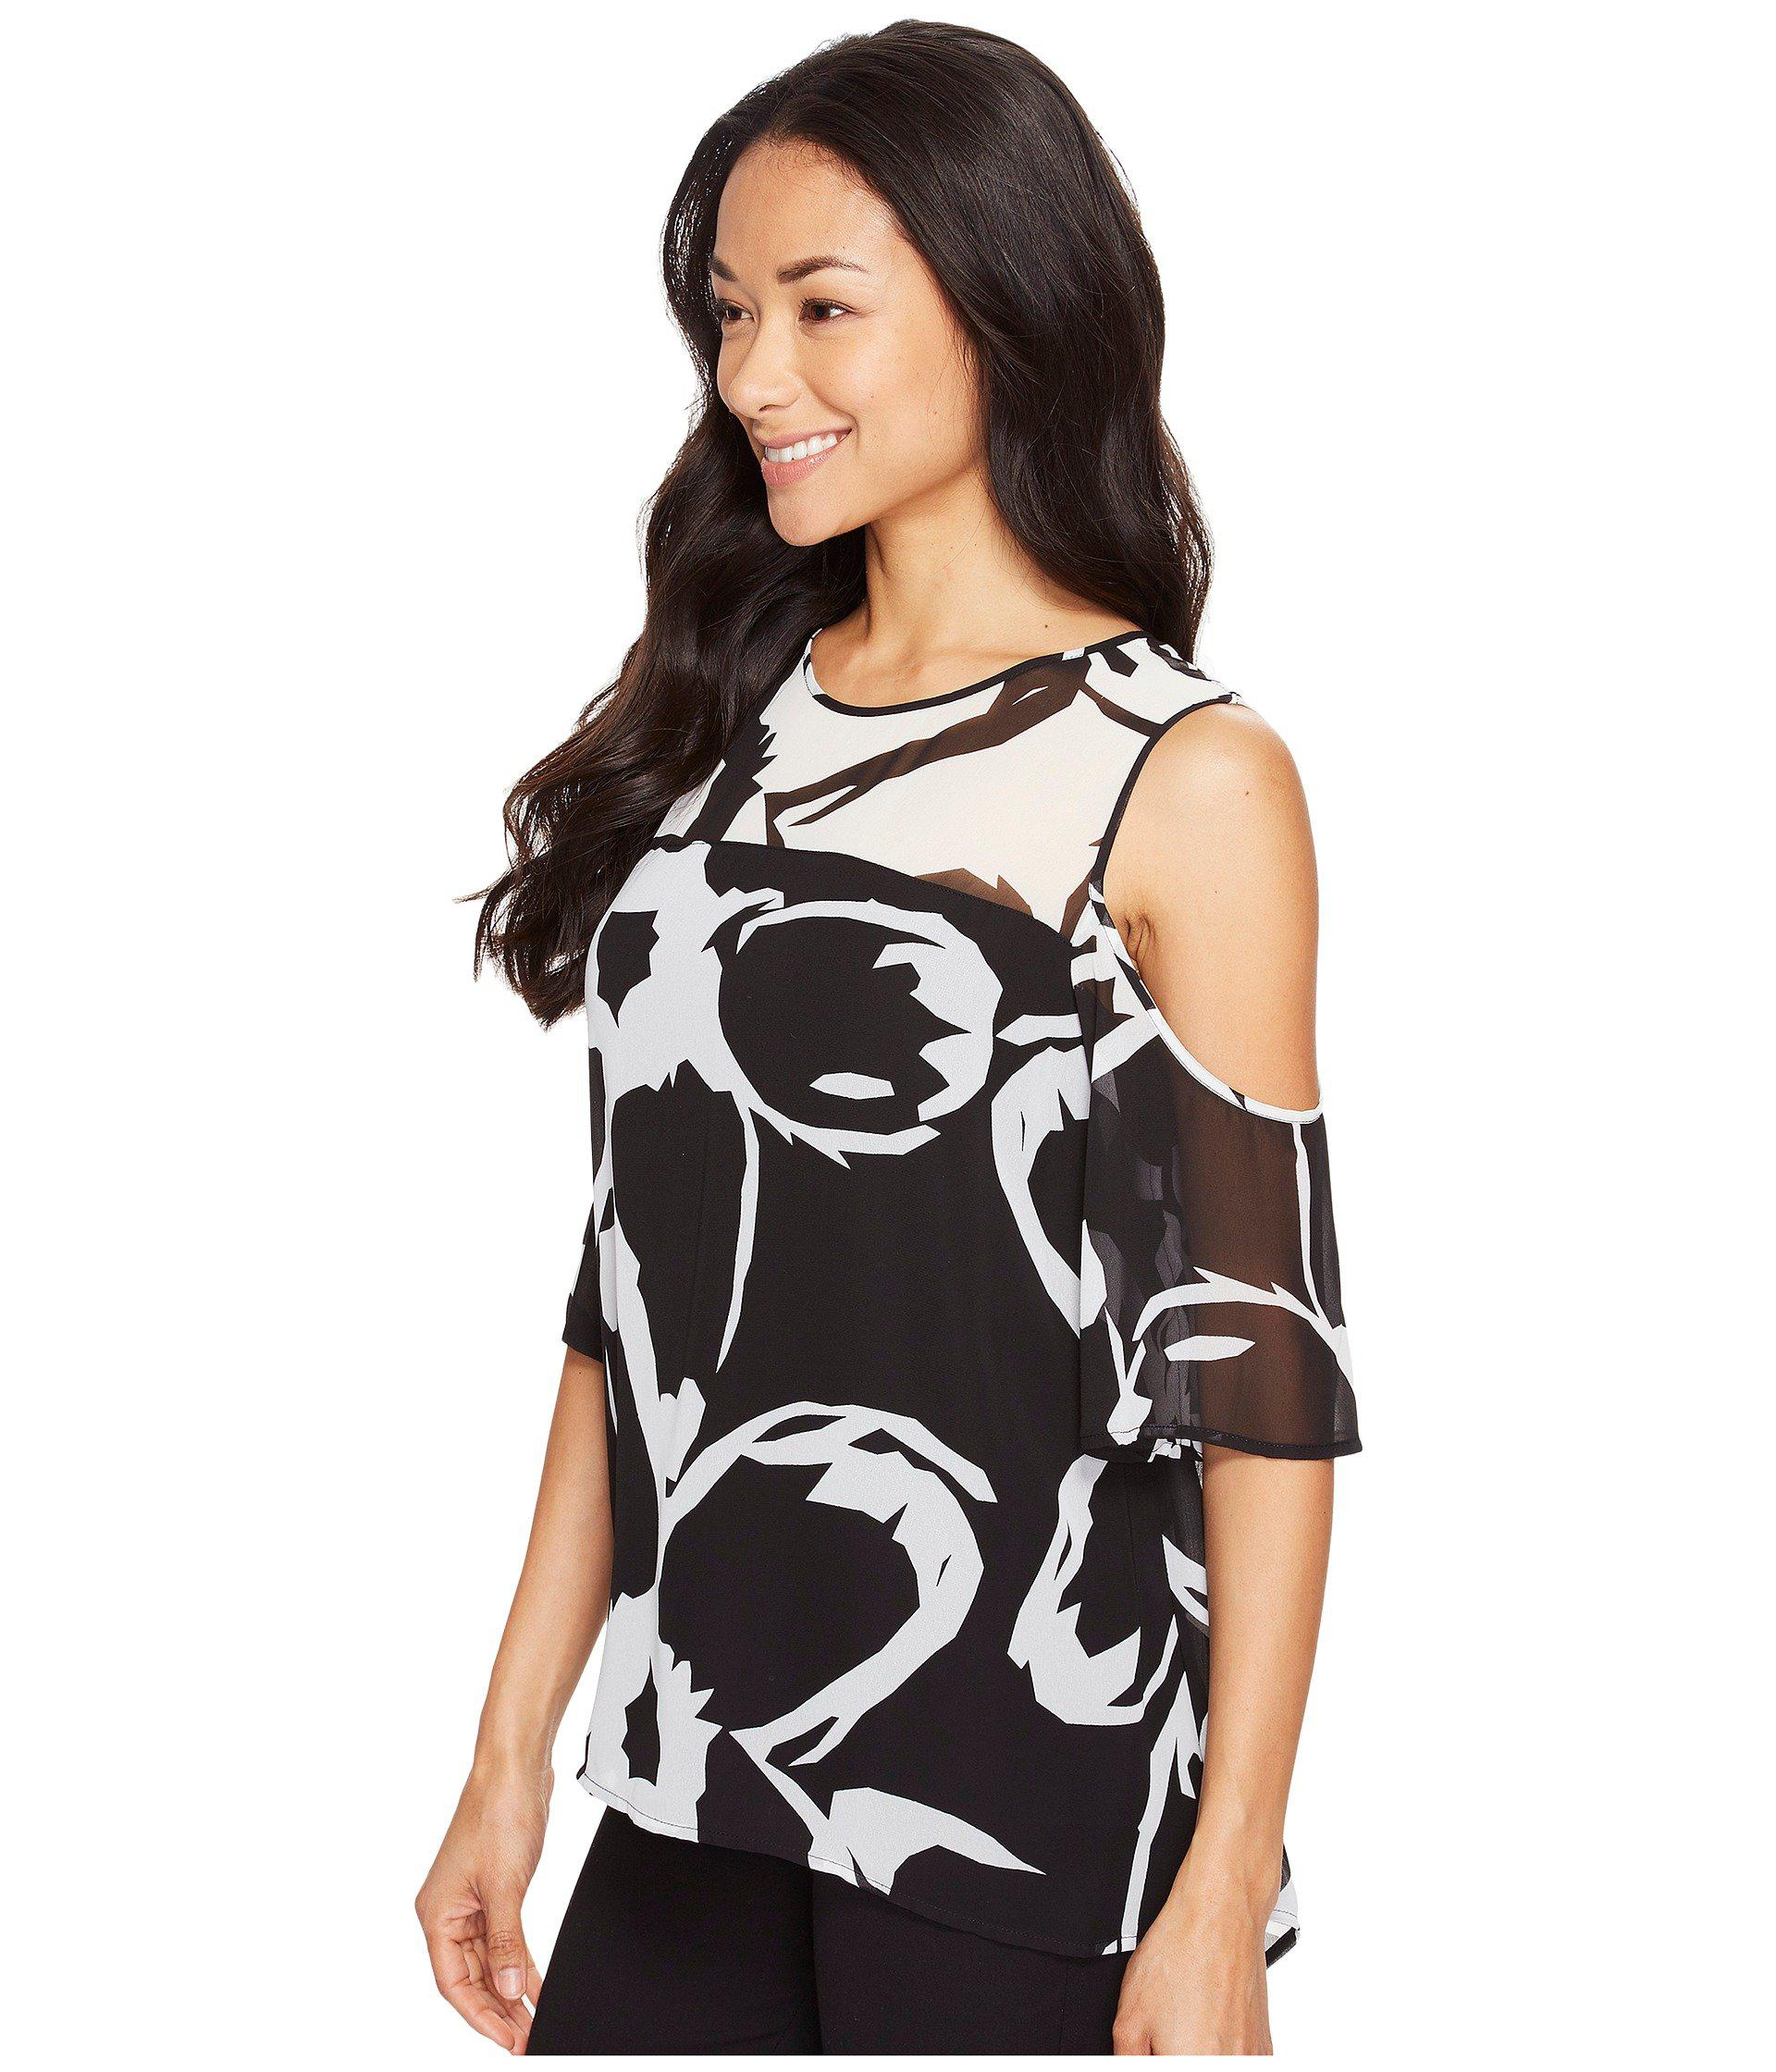 03fb80c7f2a81 Lyst - Vince Camuto Short Sleeve Cut Out Floral Cold-shoulder Blouse in  Black - Save 36%